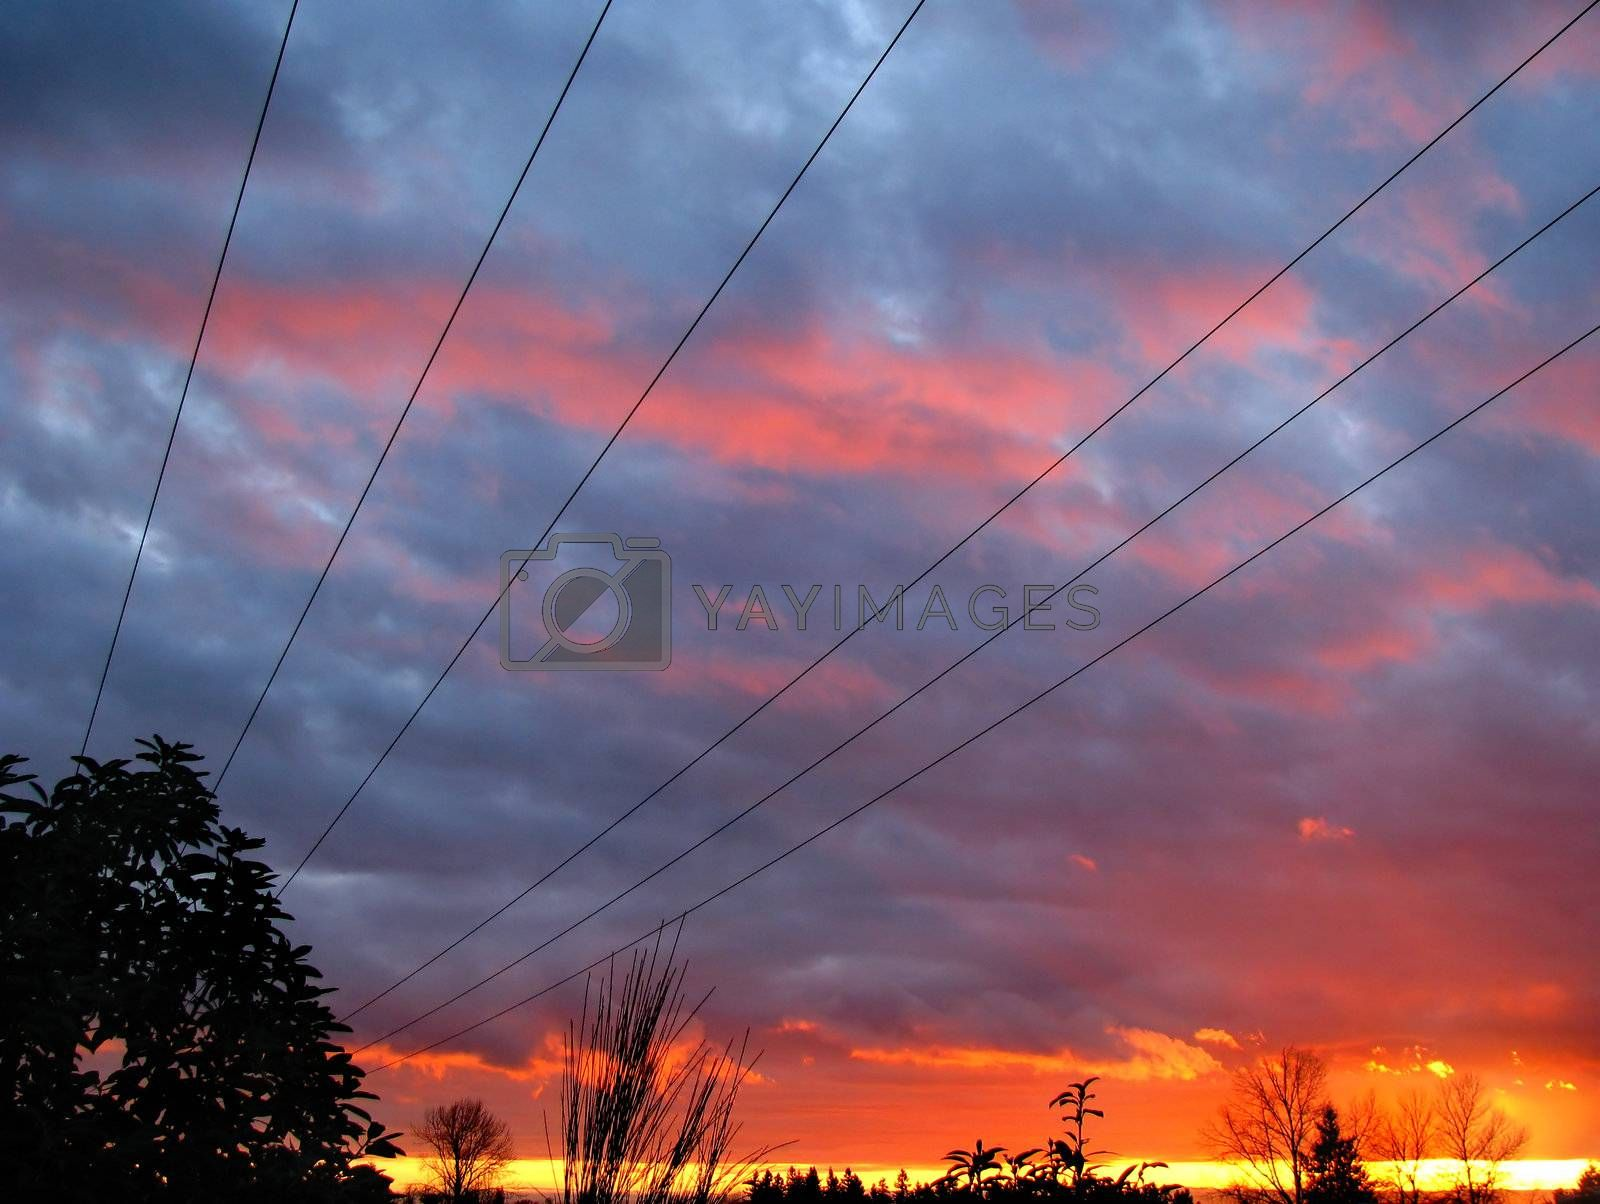 Power Line Sunset Perspective v1 by mwp1969